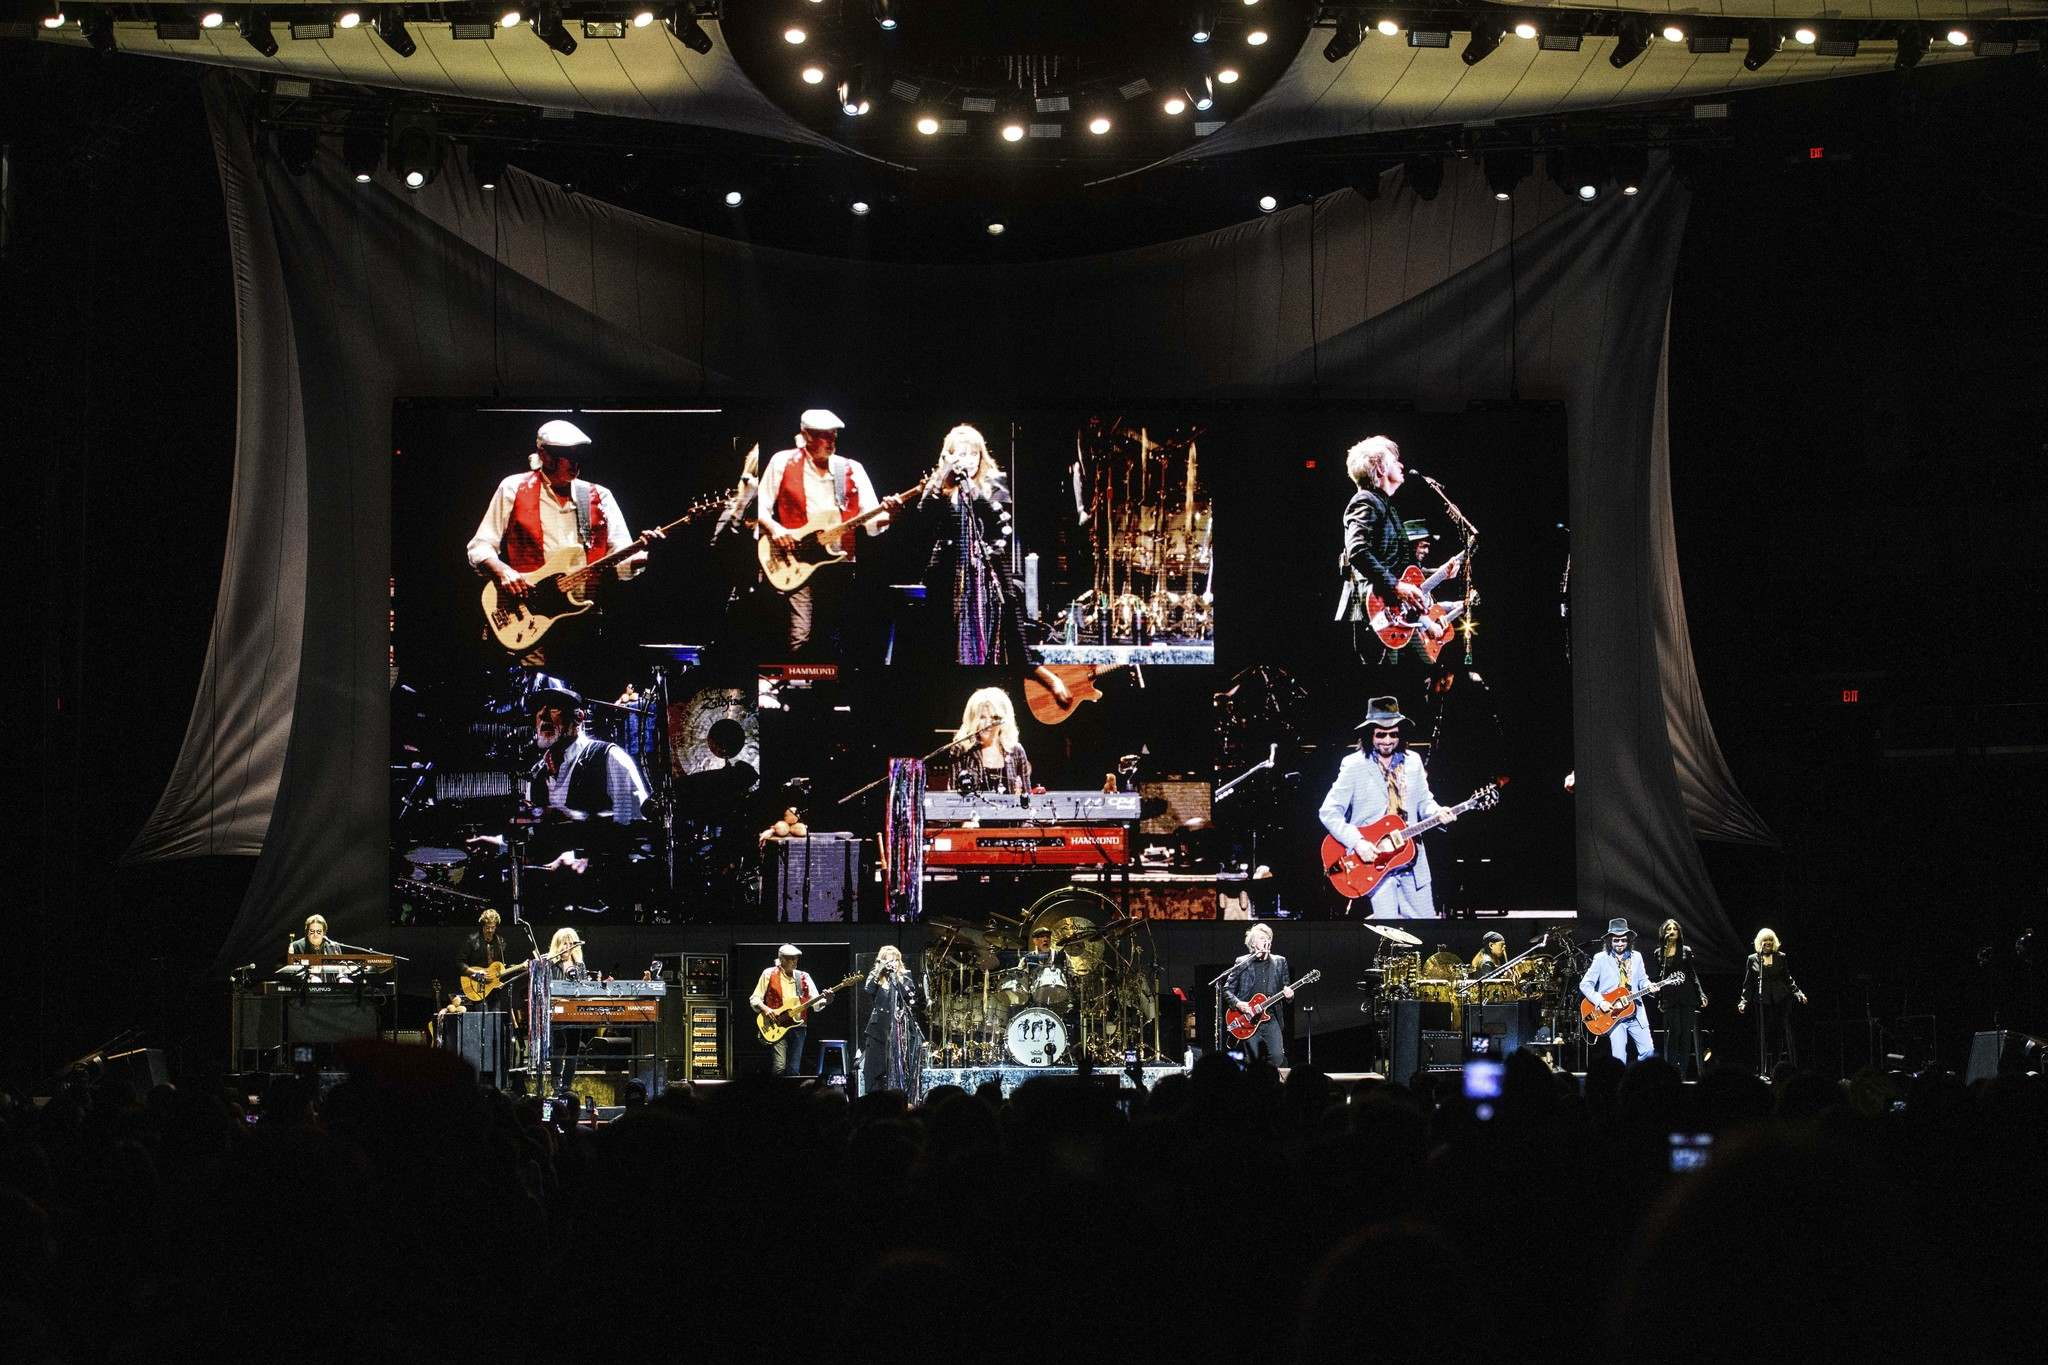 Mike Sudoma / Winnipeg Free Press</p><p>Fleetwood Mac brings their 50th Anniversary tour to Bell MTS Place for almost over 11,000 fans young and old Thursday evening.</p>